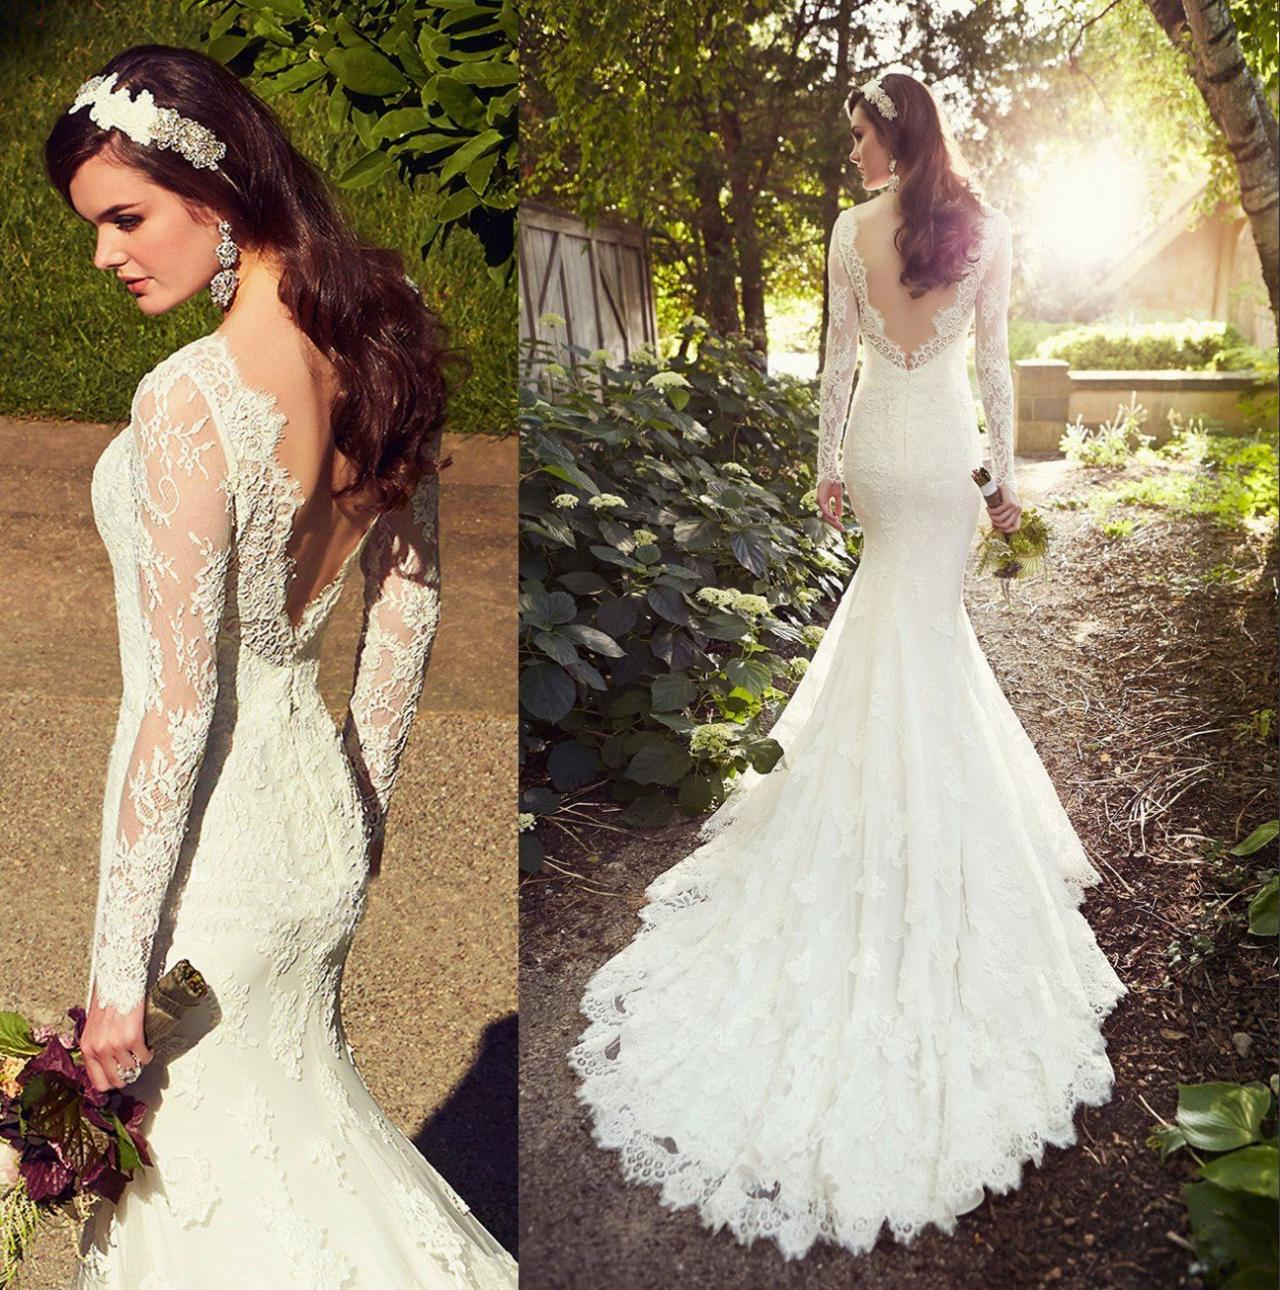 white wedding dresses long sleeves wedding gown lace wedding gowns ball gown bridal dress princess w long sleeve wedding dresses White Wedding Dresses Long Sleeves Wedding Gown Lace Wedding Gowns Ball Gown Bridal Dress Princess Wedding Dress Beautiful Brides Dress With Long Train